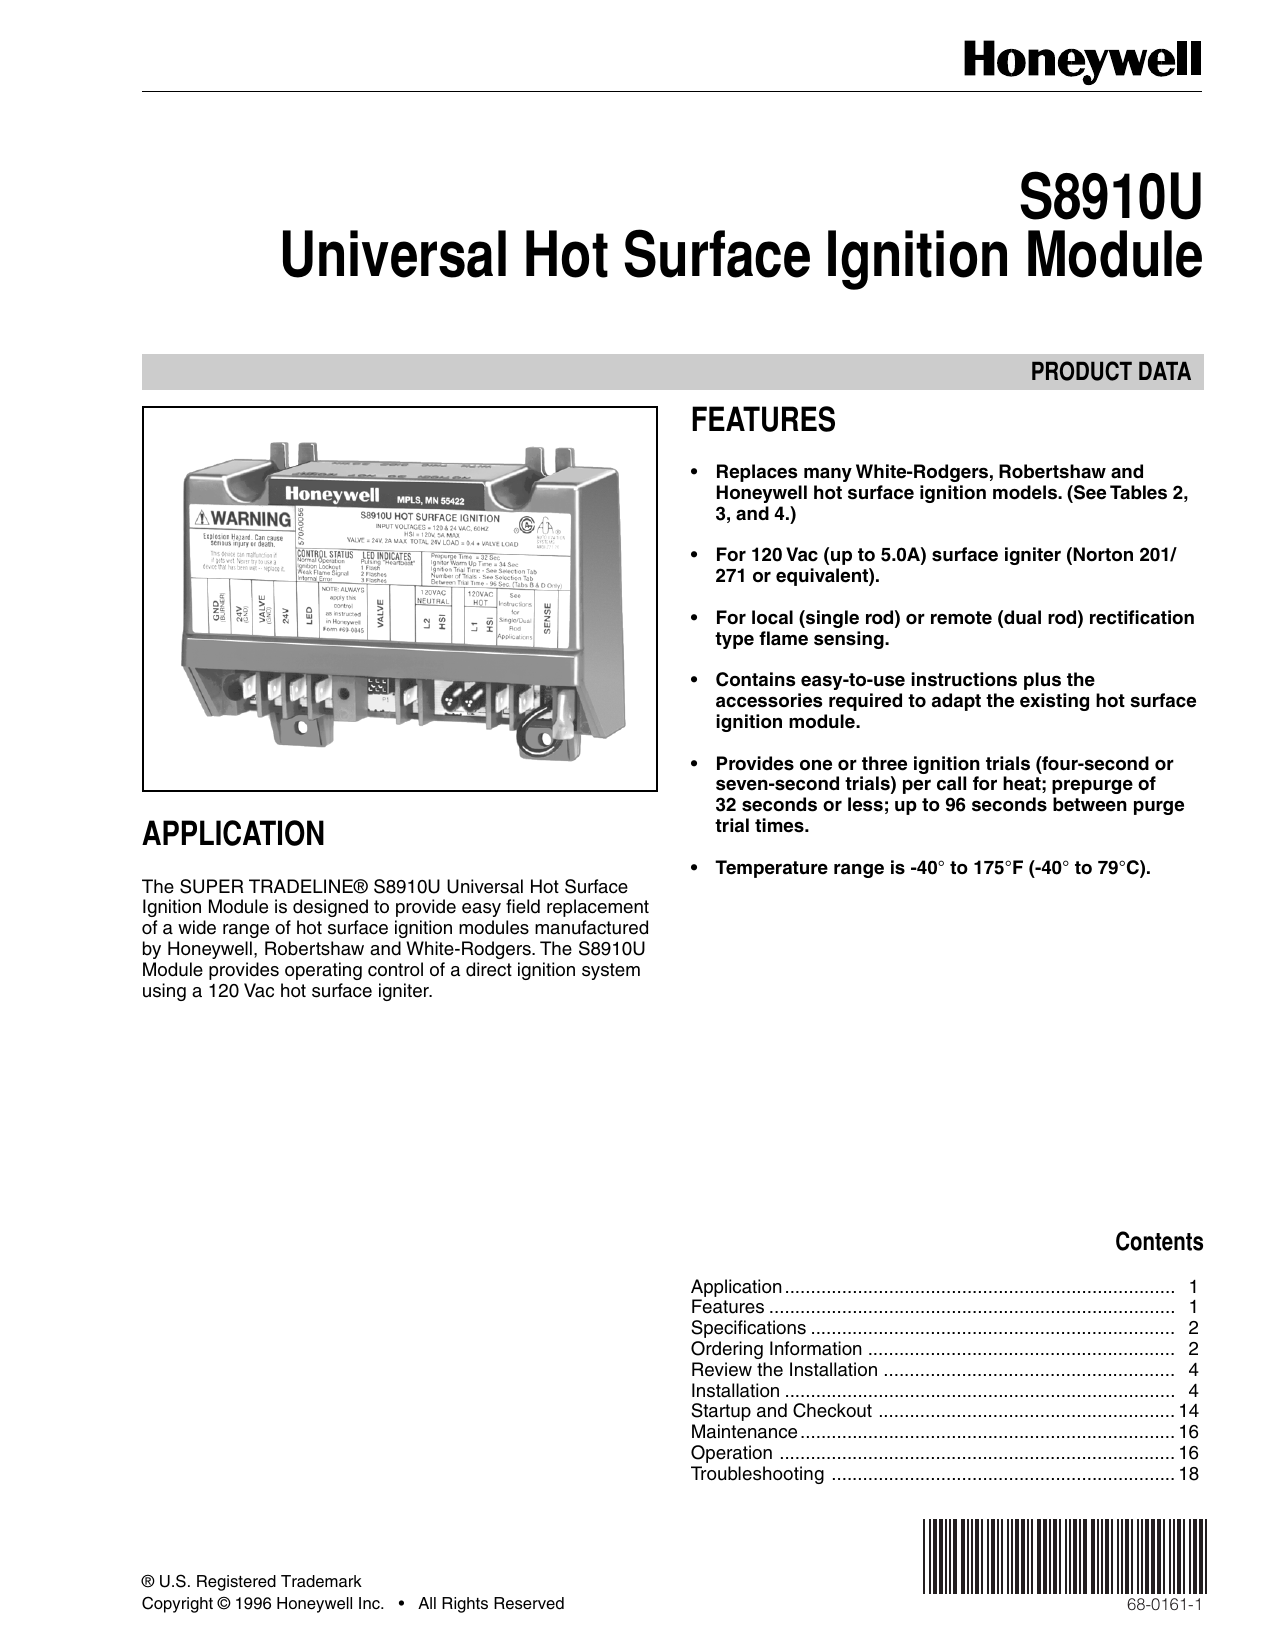 S8910u Universal Hot Surface Ignition Module Robertshaw Wiring Diagram 018051873 1 C9732b213cac466390a4d5be46b7bbe1